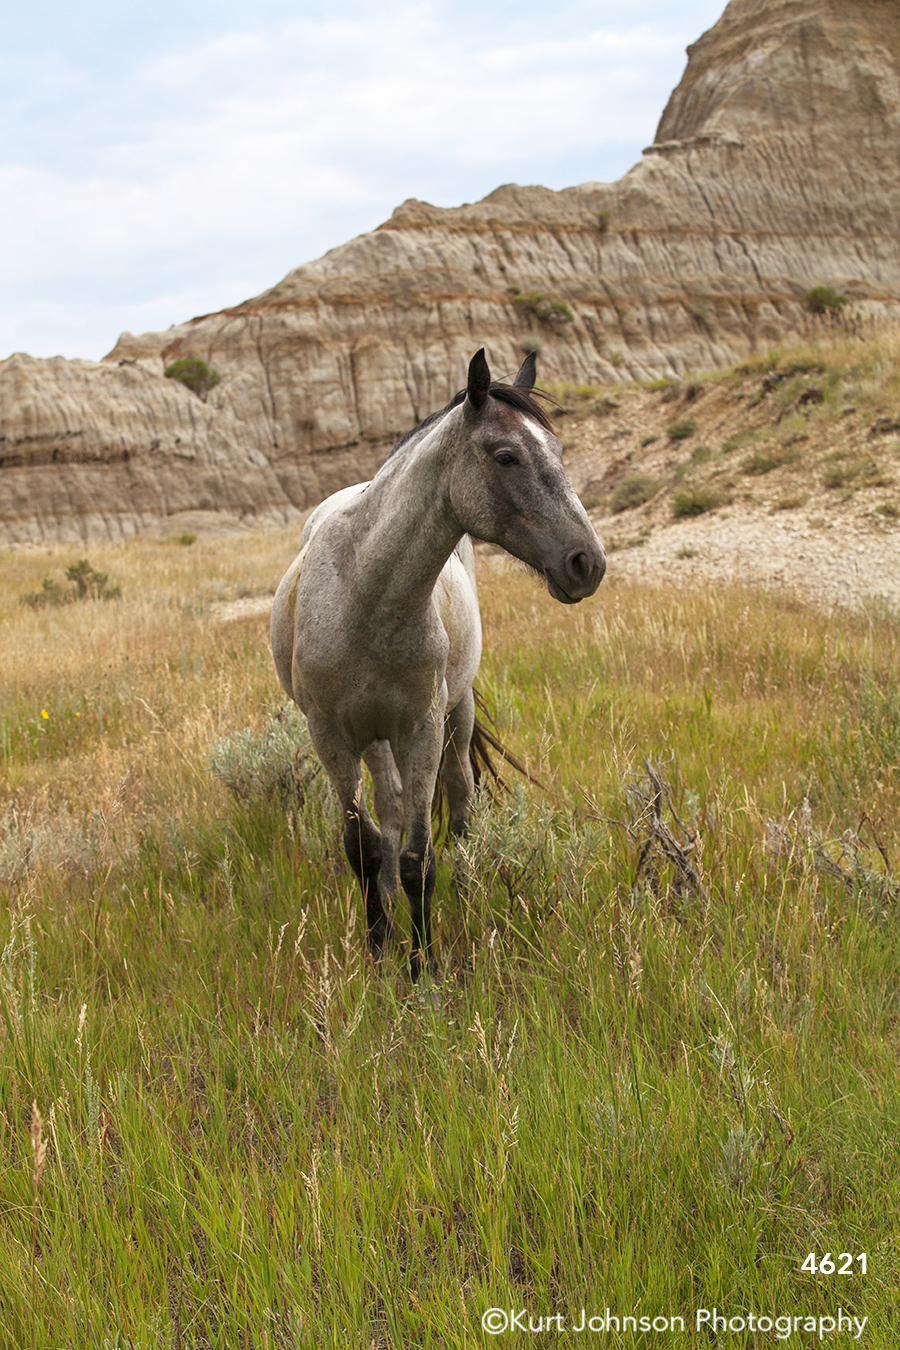 green yellow grass grasses white horse horses wildlife animal nature farm midwest landscape